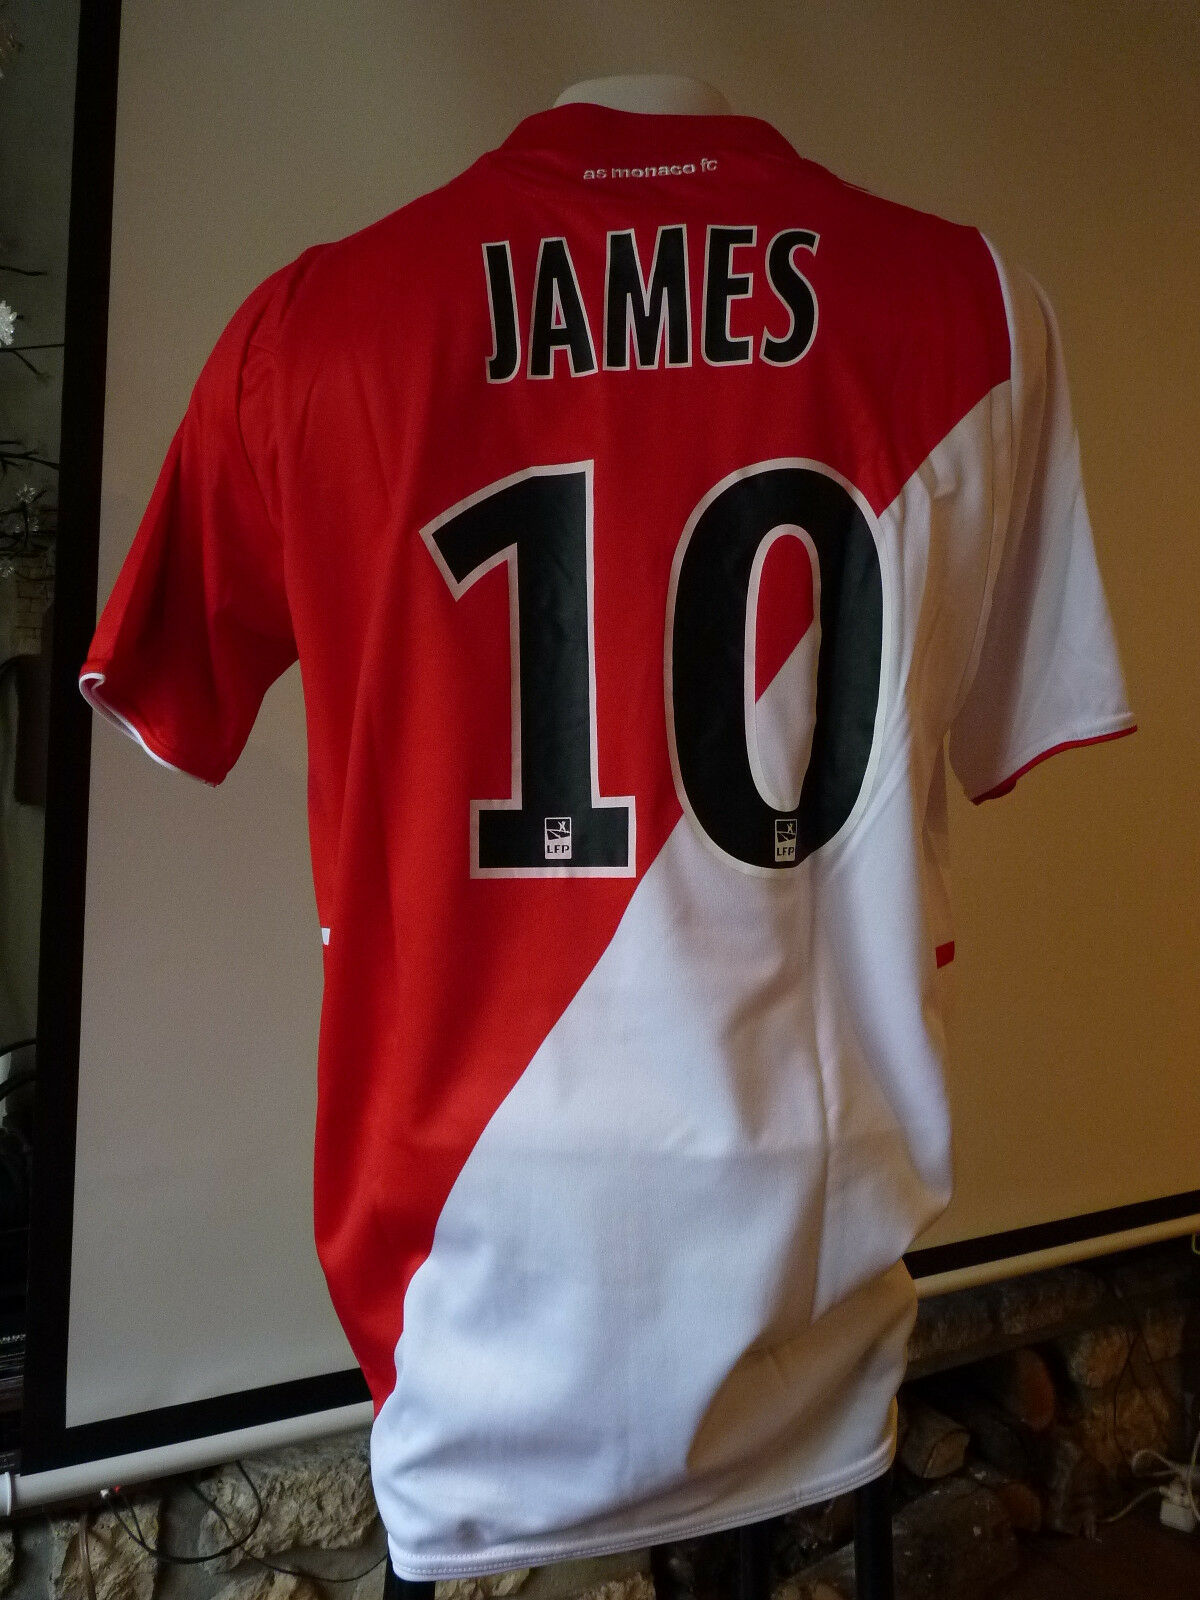 Maillot AS Monaco 201314 James Rodriguez  13 2014 porté  Bayern  Real Madrid